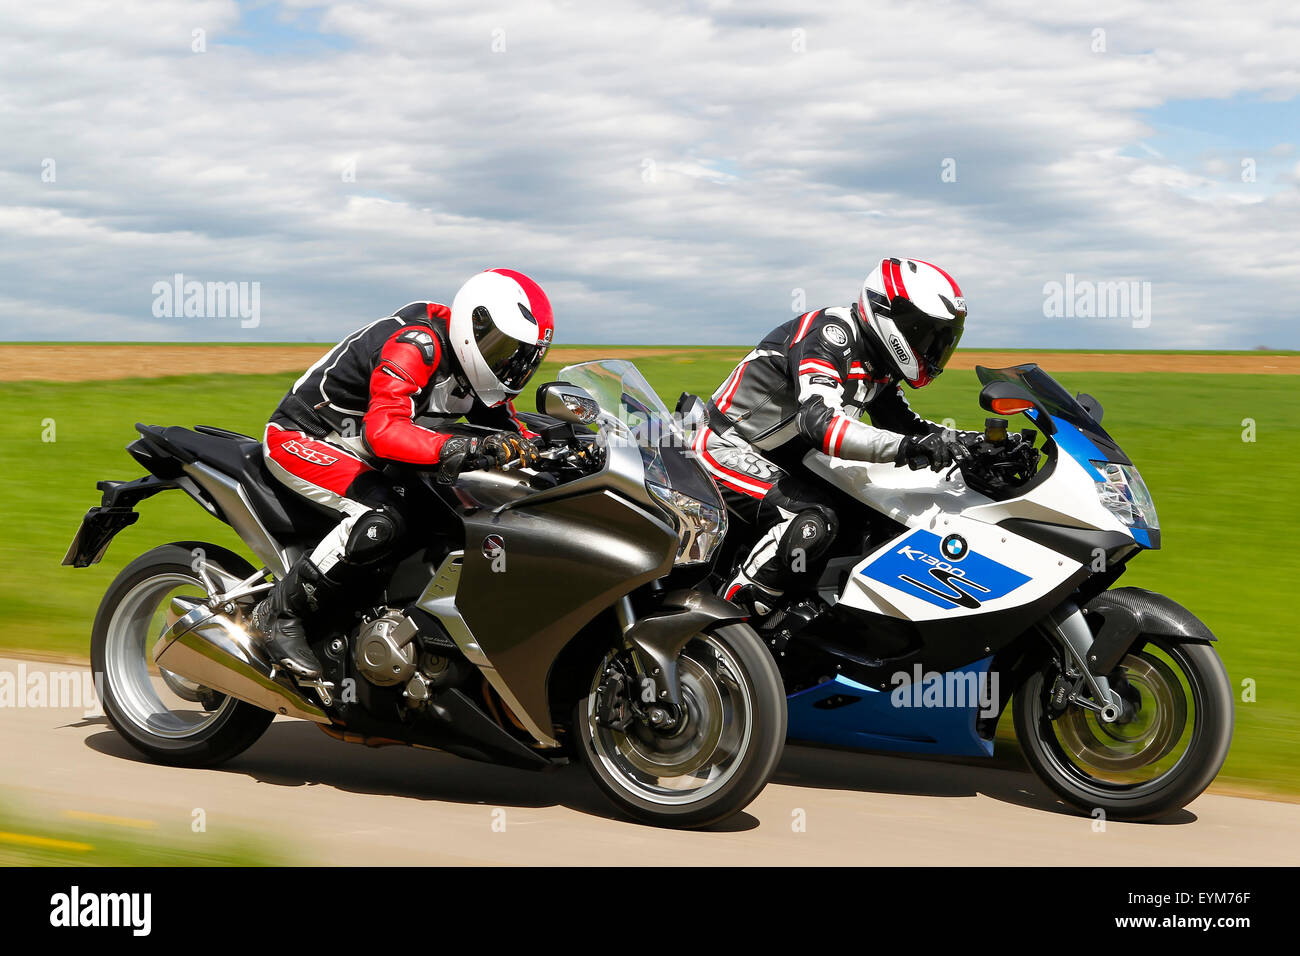 motorcycles bmw k 1300 s hp and honda vfr 1200 f dct year. Black Bedroom Furniture Sets. Home Design Ideas